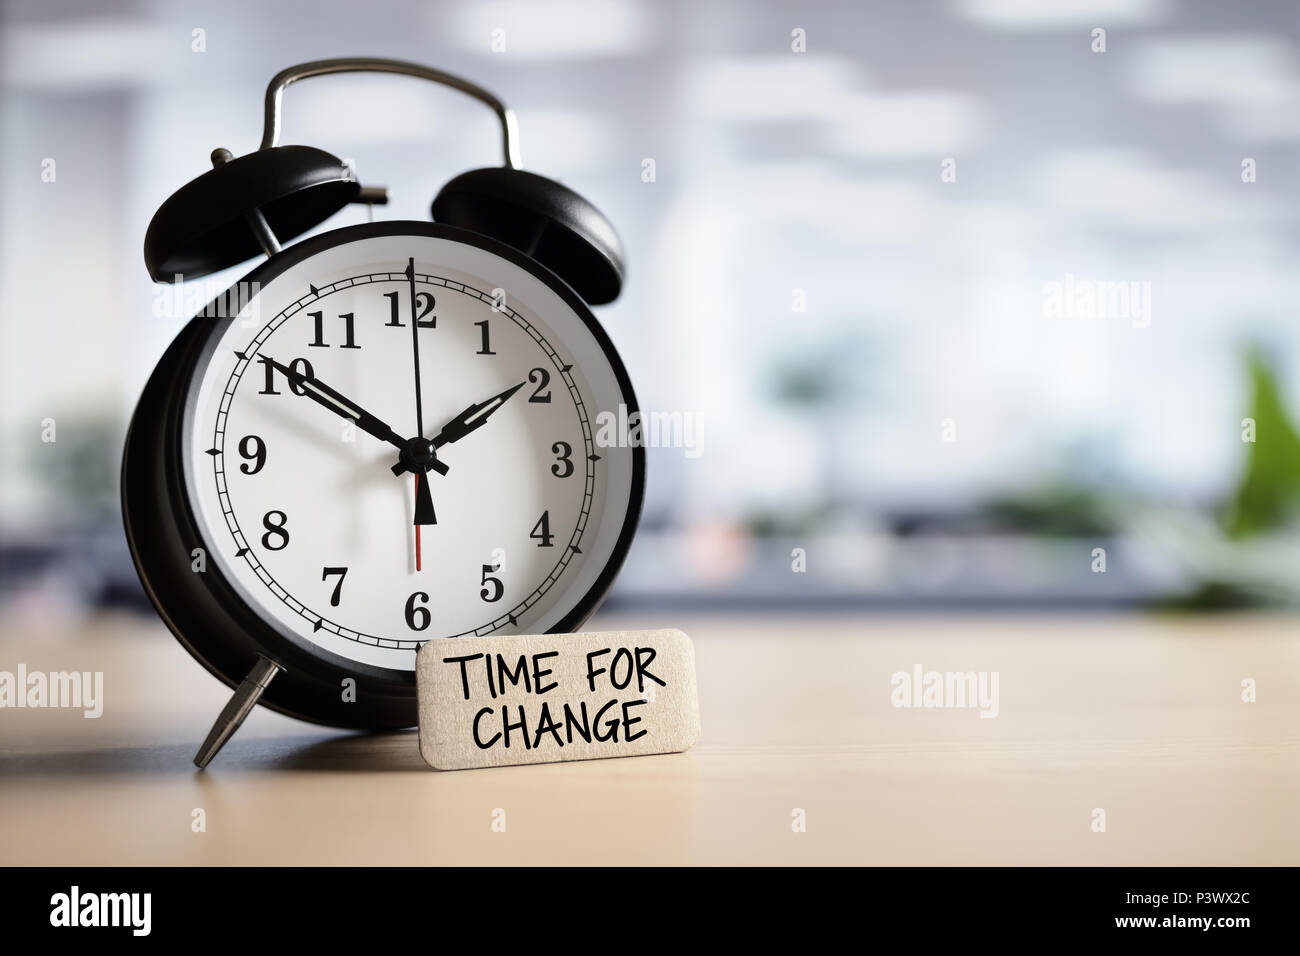 Time for change or action concept message with alarm clock on desk in office - Stock Image